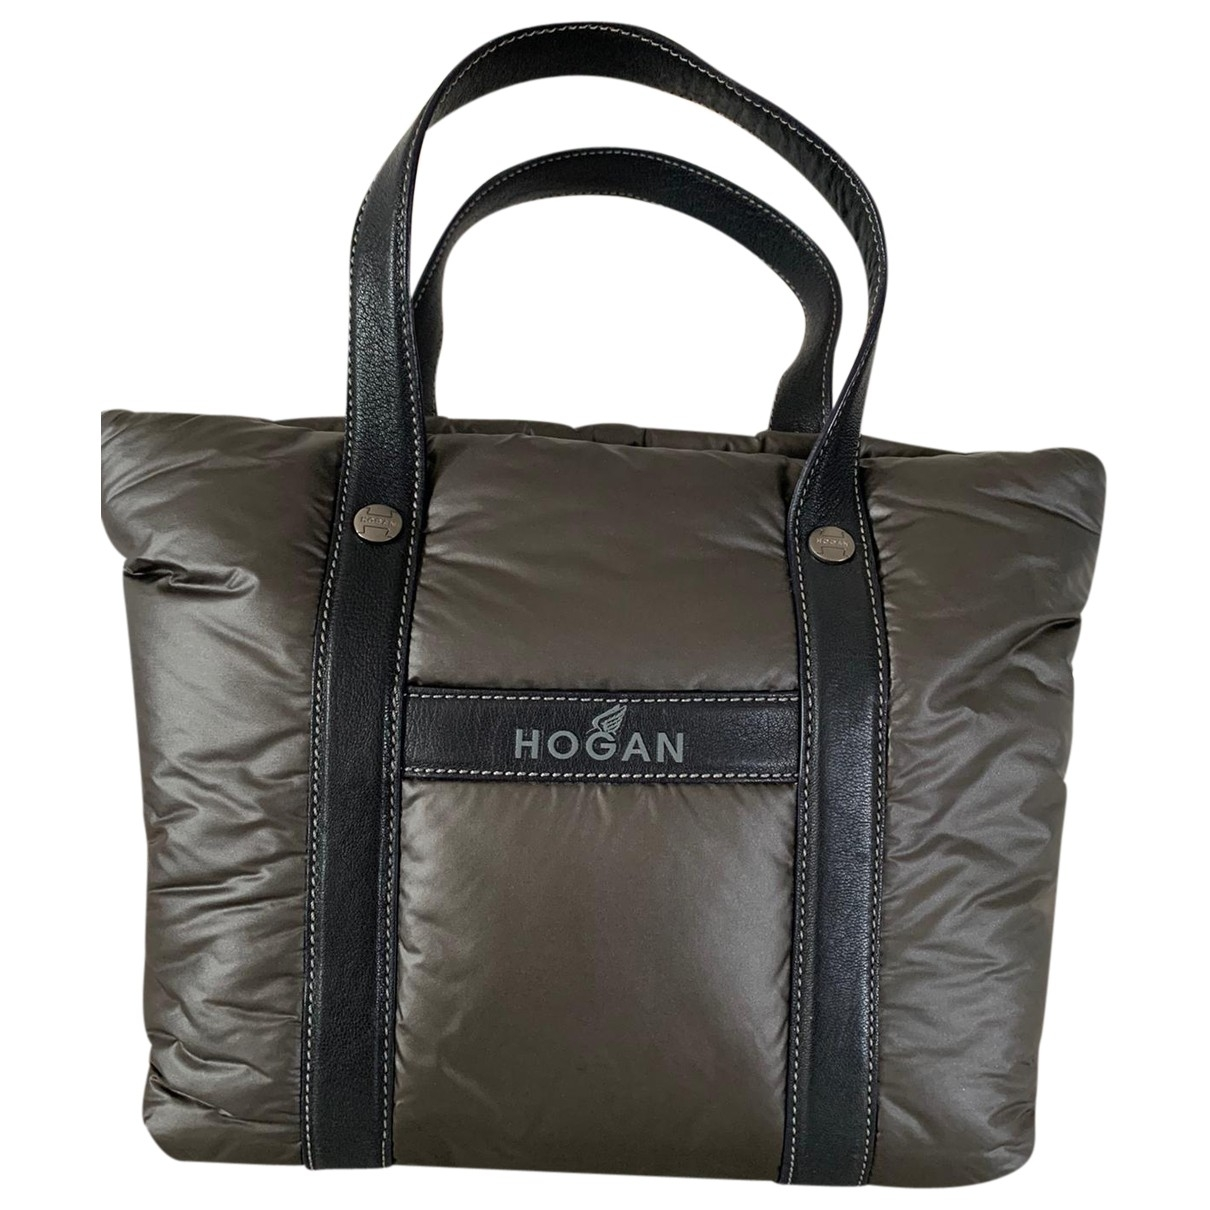 Hogan \N Anthracite handbag for Women \N